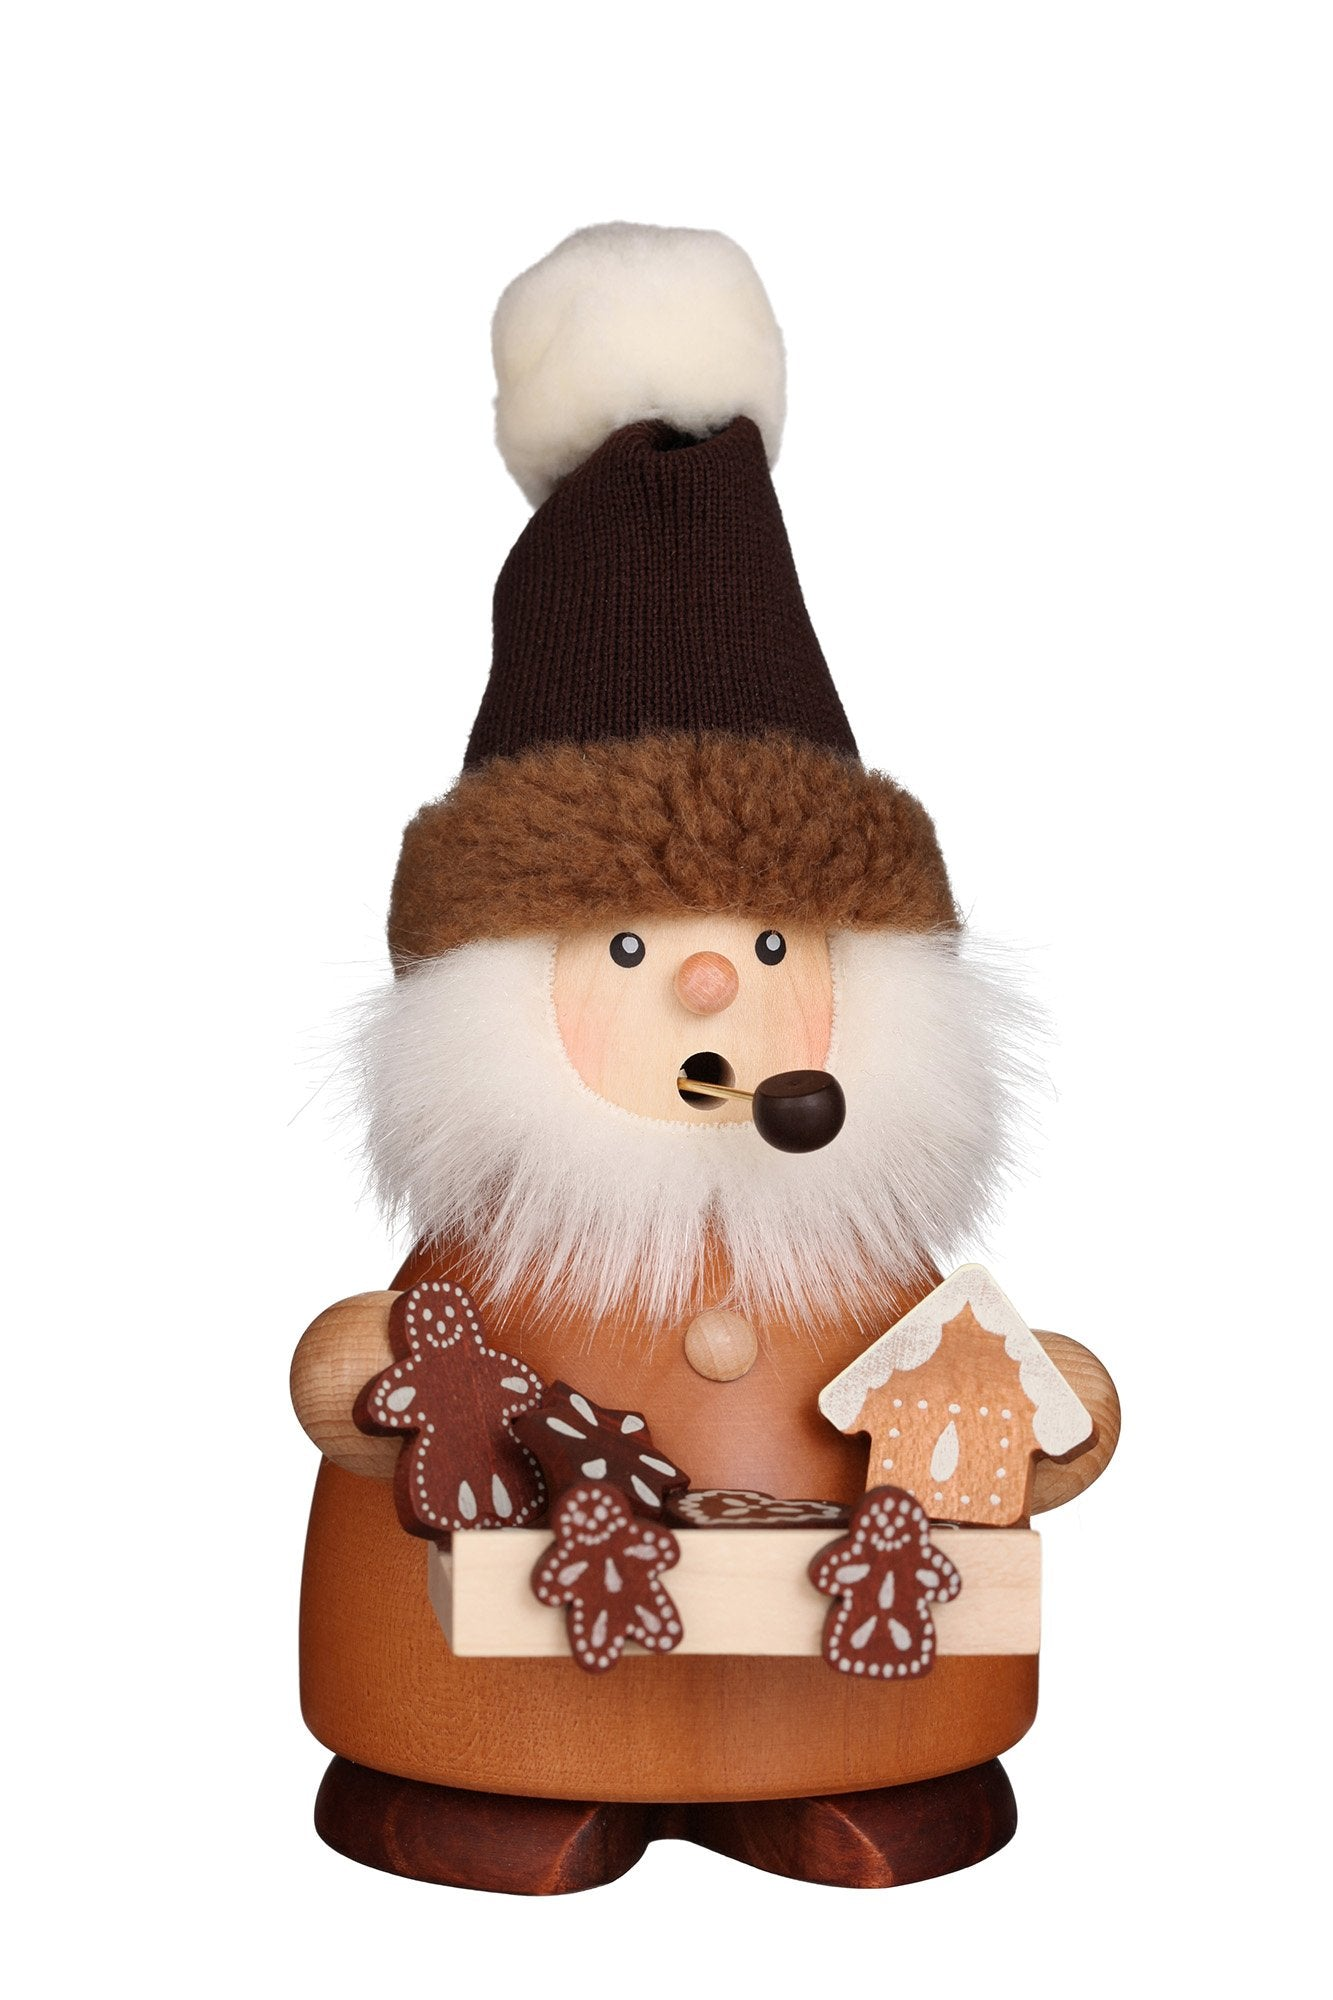 Incense Burner - Small - Gingerbread seller with furry hat